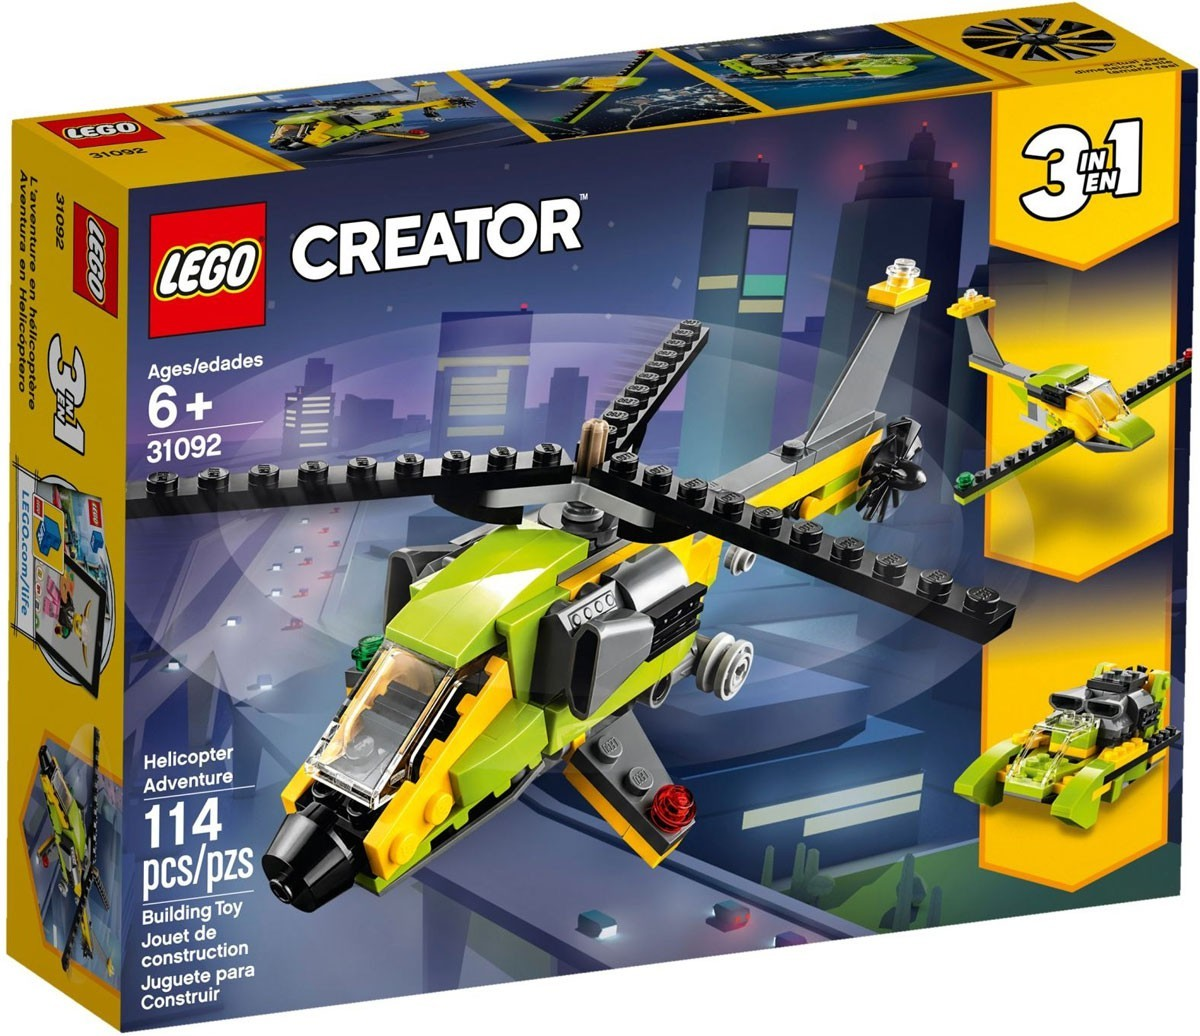 Helicopter Adventure - LEGO,31092